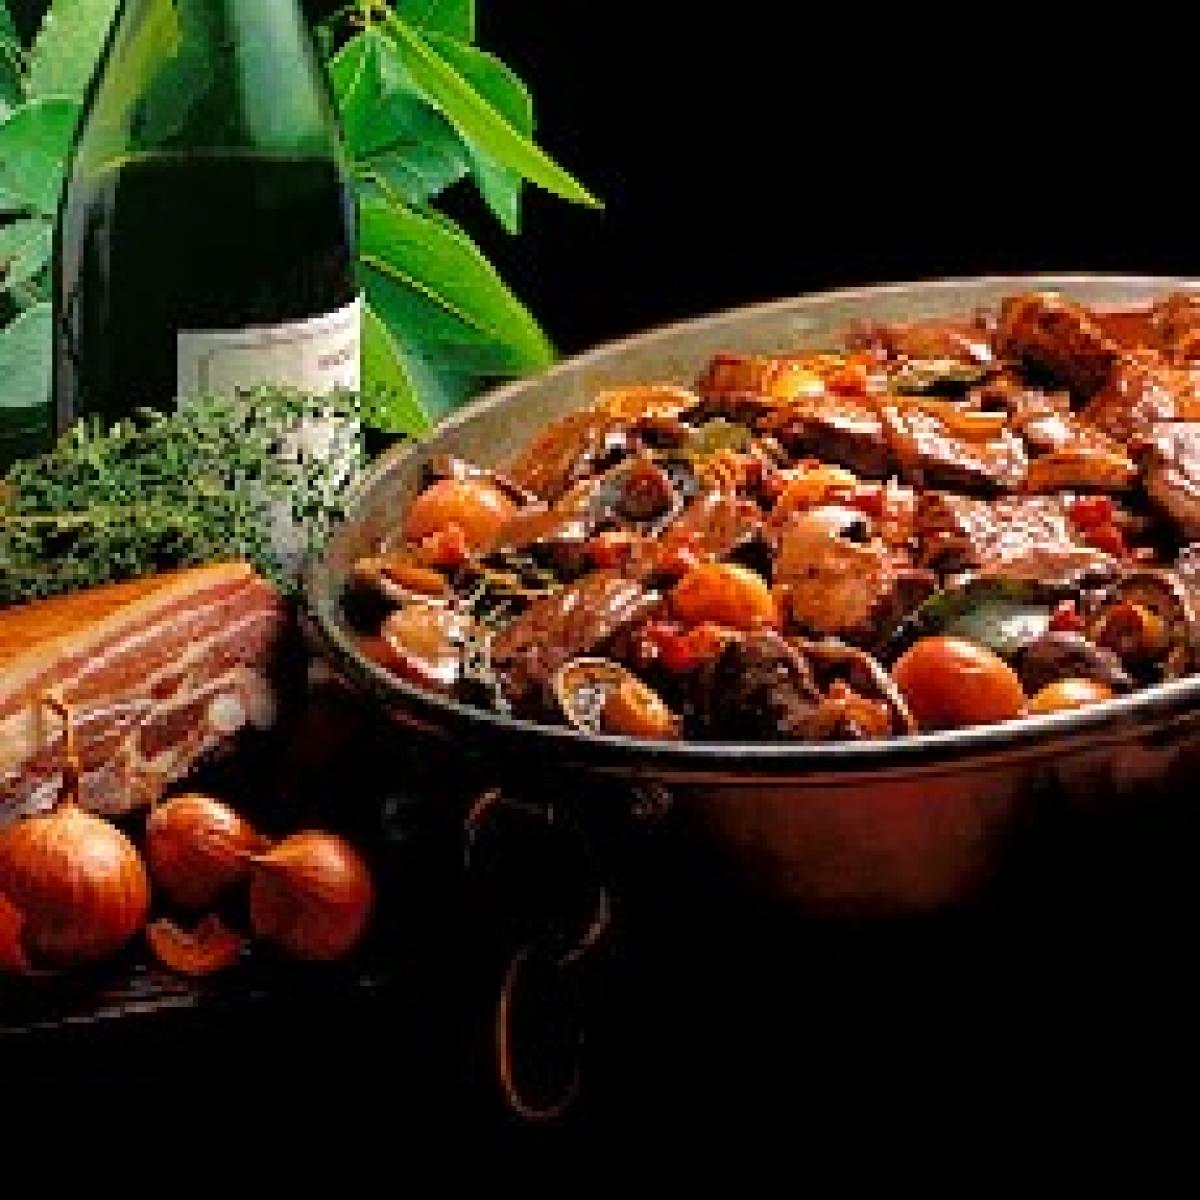 A picture of Delia's Boeuf Bourguignon recipe